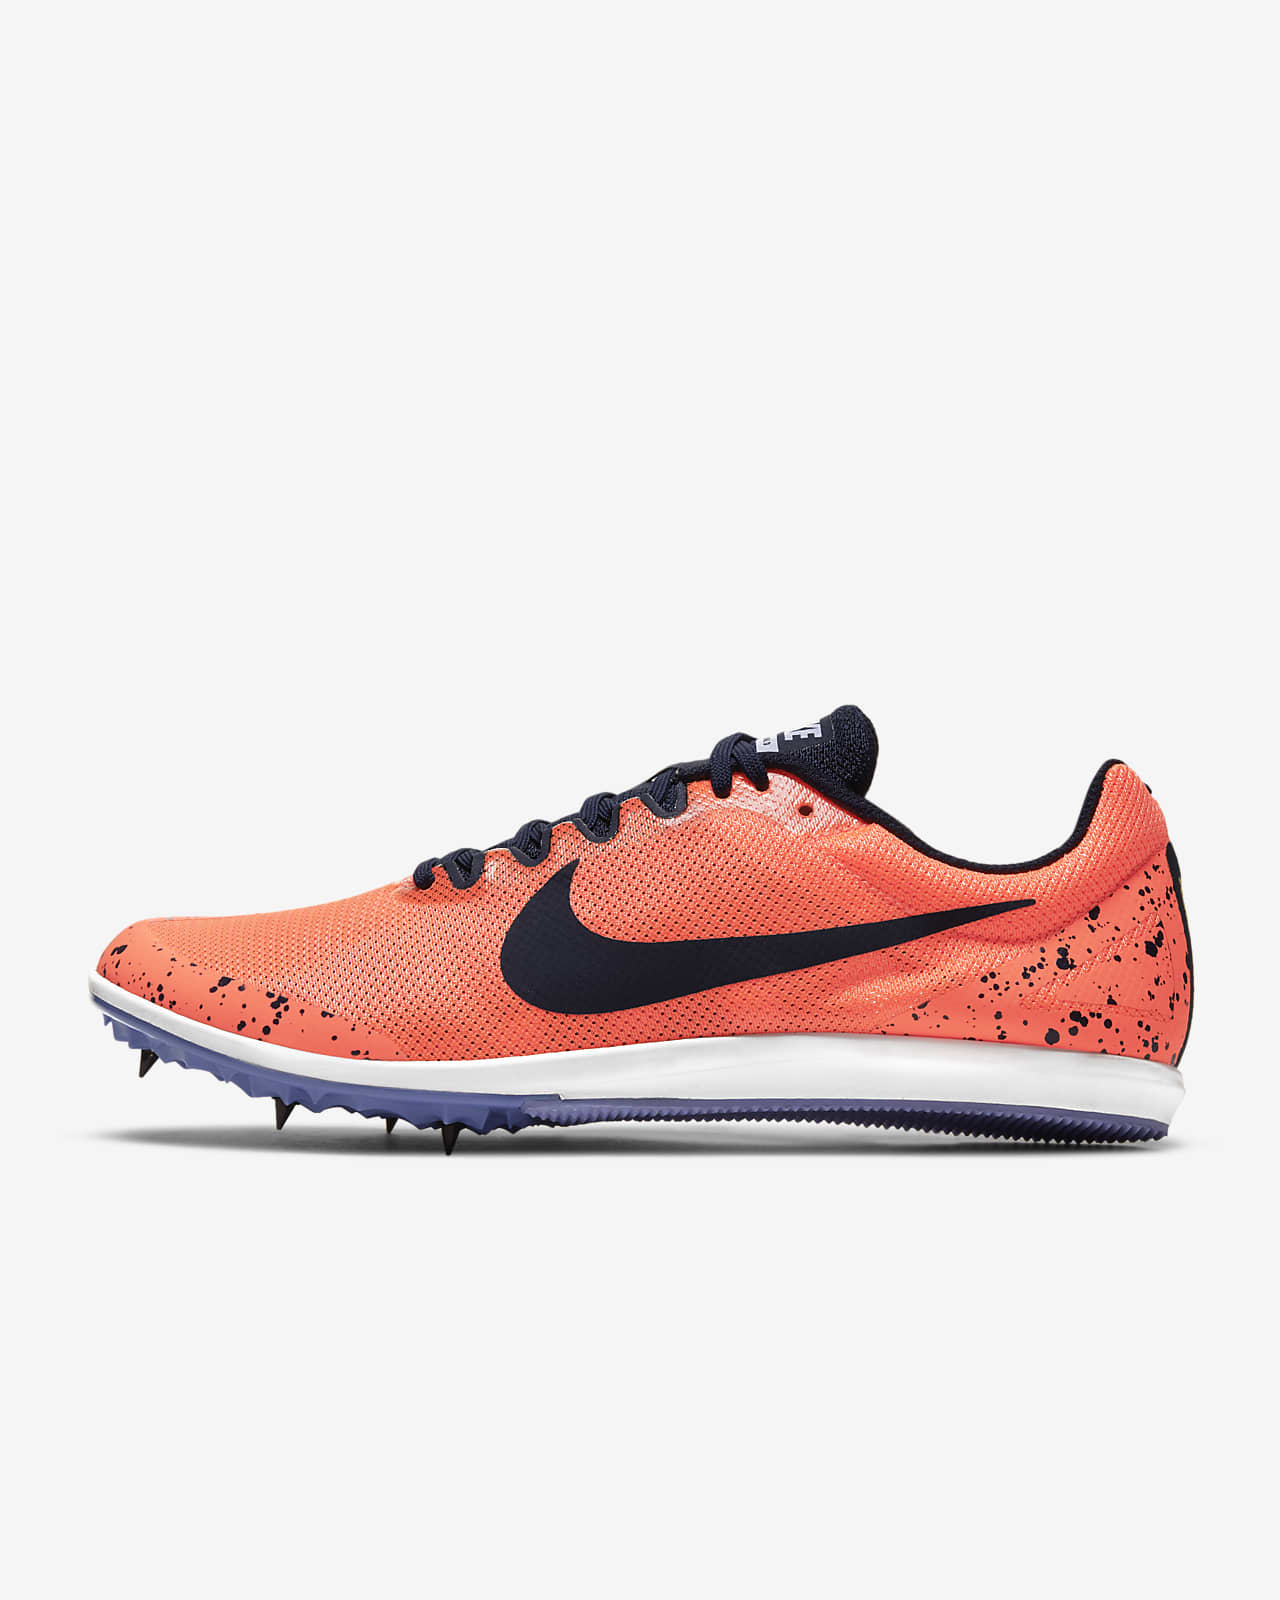 Nike Zoom Rival D 10 Track and Field distance spikes